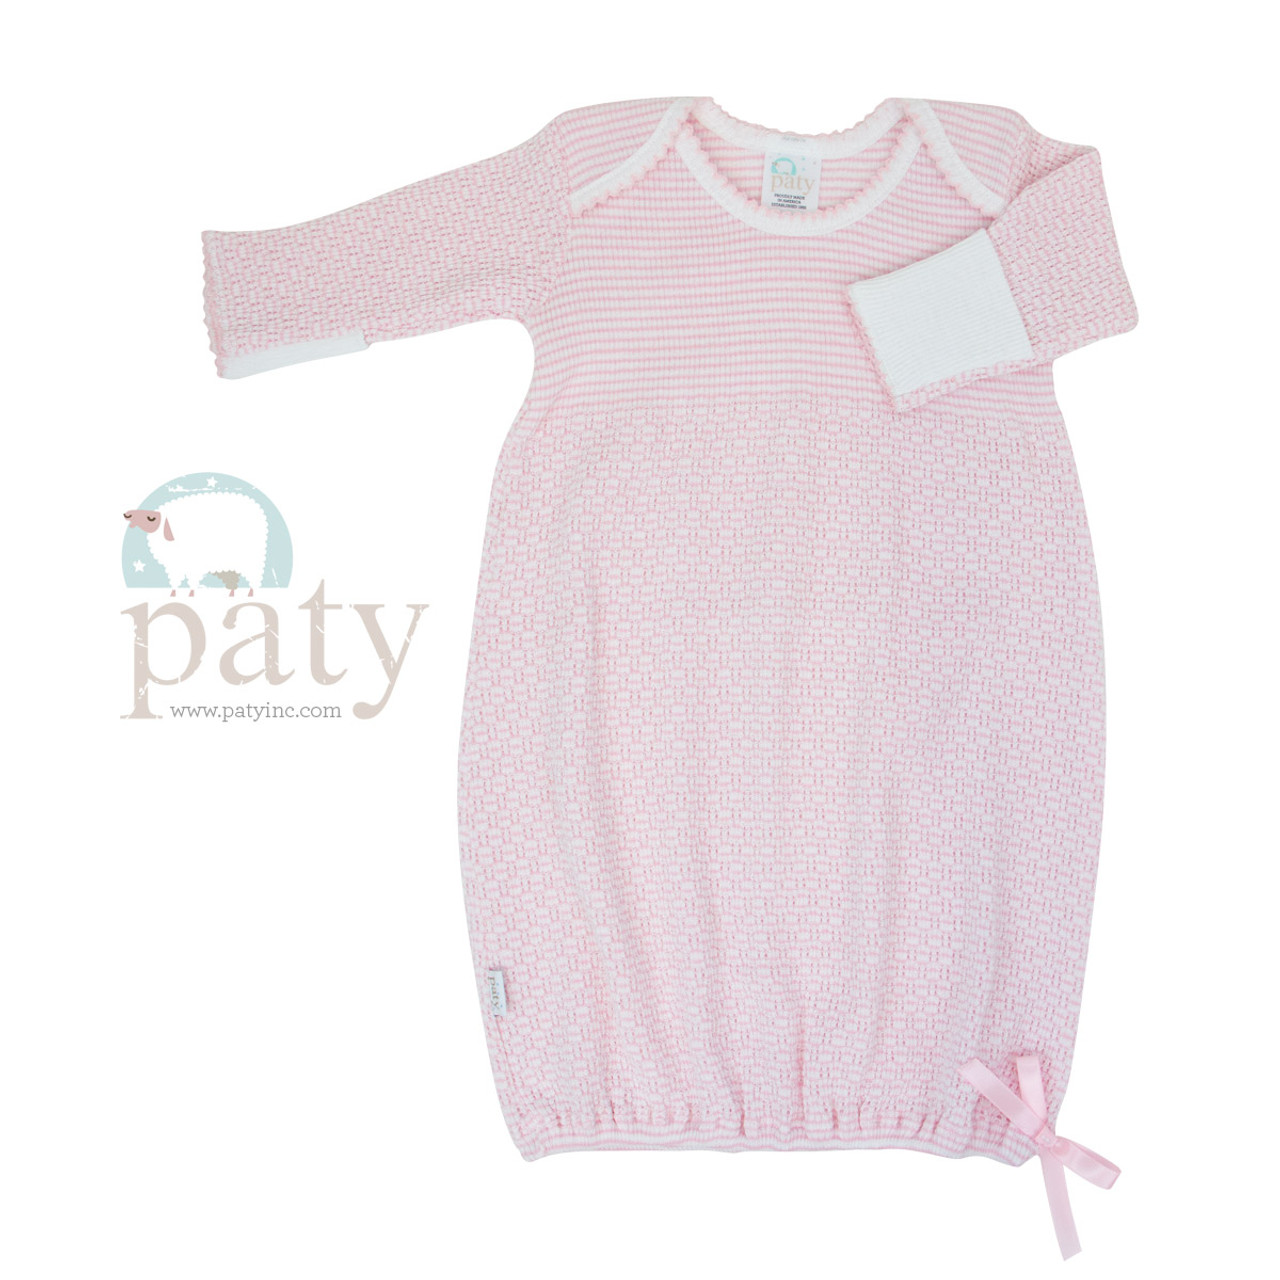 Monogrammed Baby Gown for Boys Circle Monogram Gown and Hat Gingham Sibling Matching